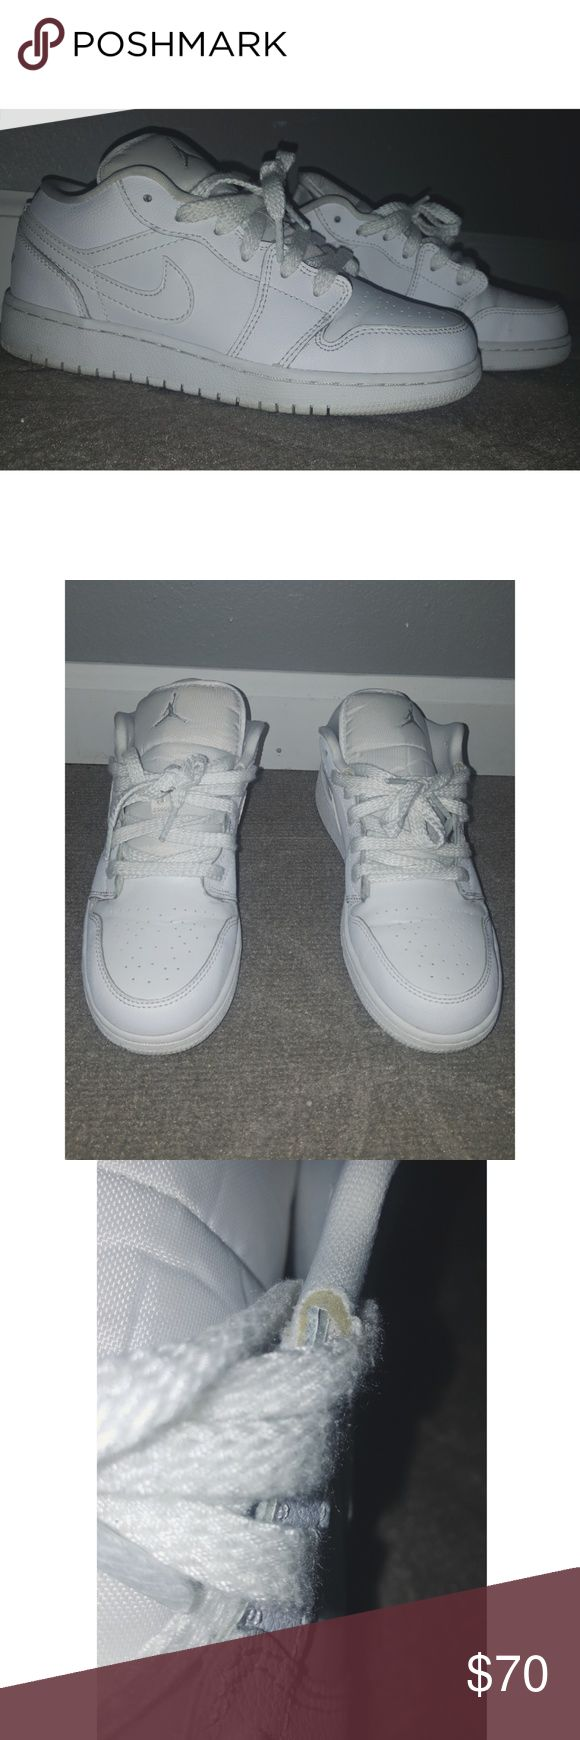 Nike air Jordan 1 All white lowtop air Jordan's. Has a small tear on the top left shoe wear the shoe lace ends. Size 5 youth. Air Jordan Shoes Sneakers